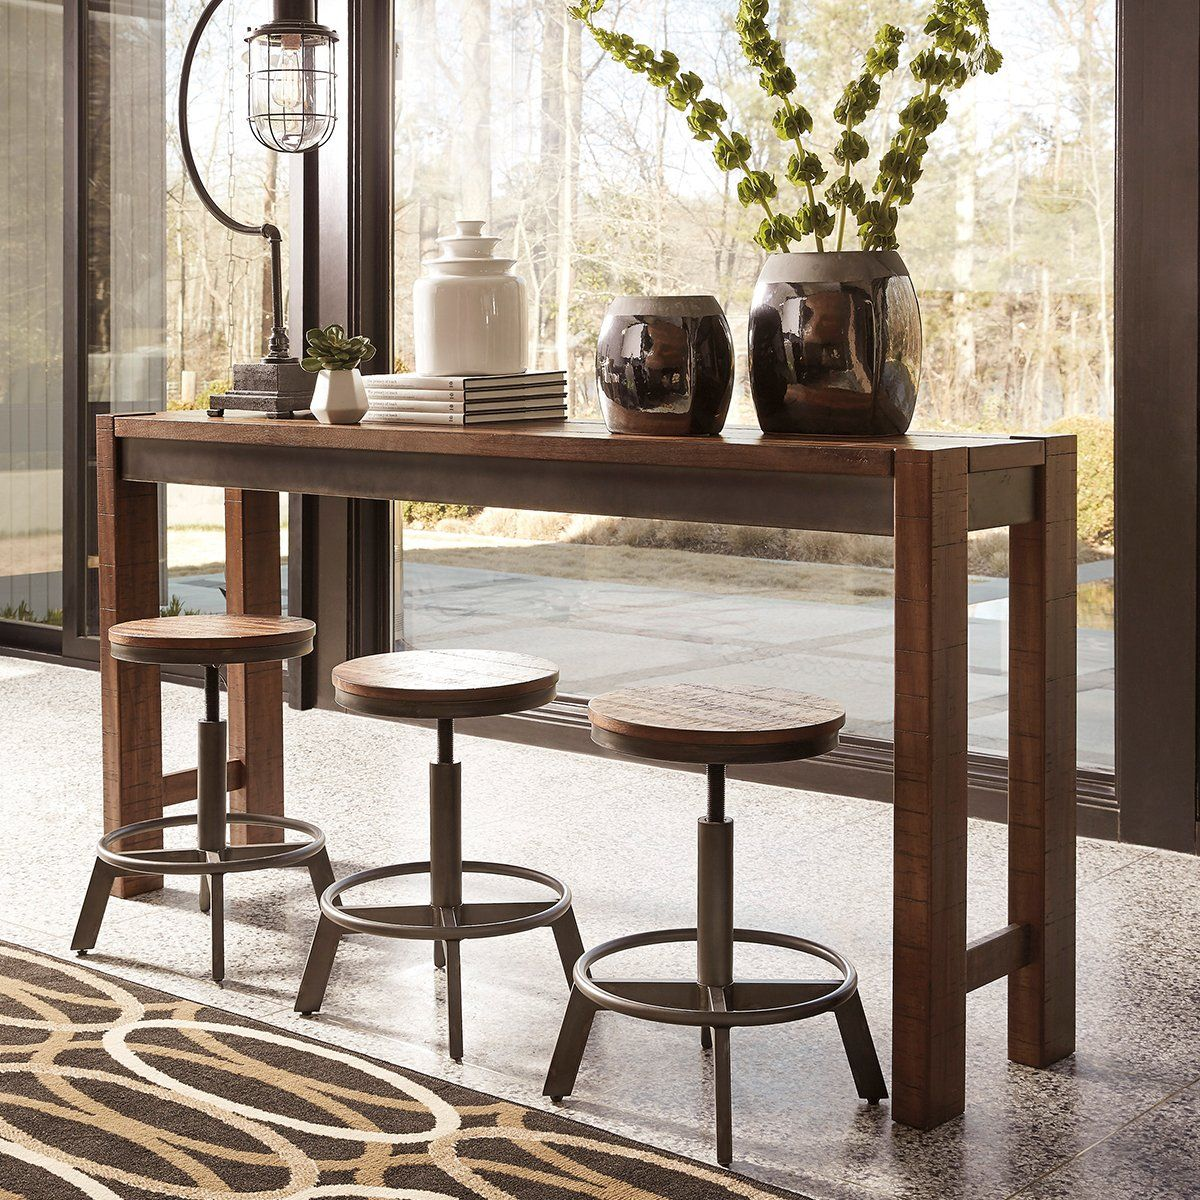 Wilson Masa Bar Brown Dining Room Set Counter Height Dining